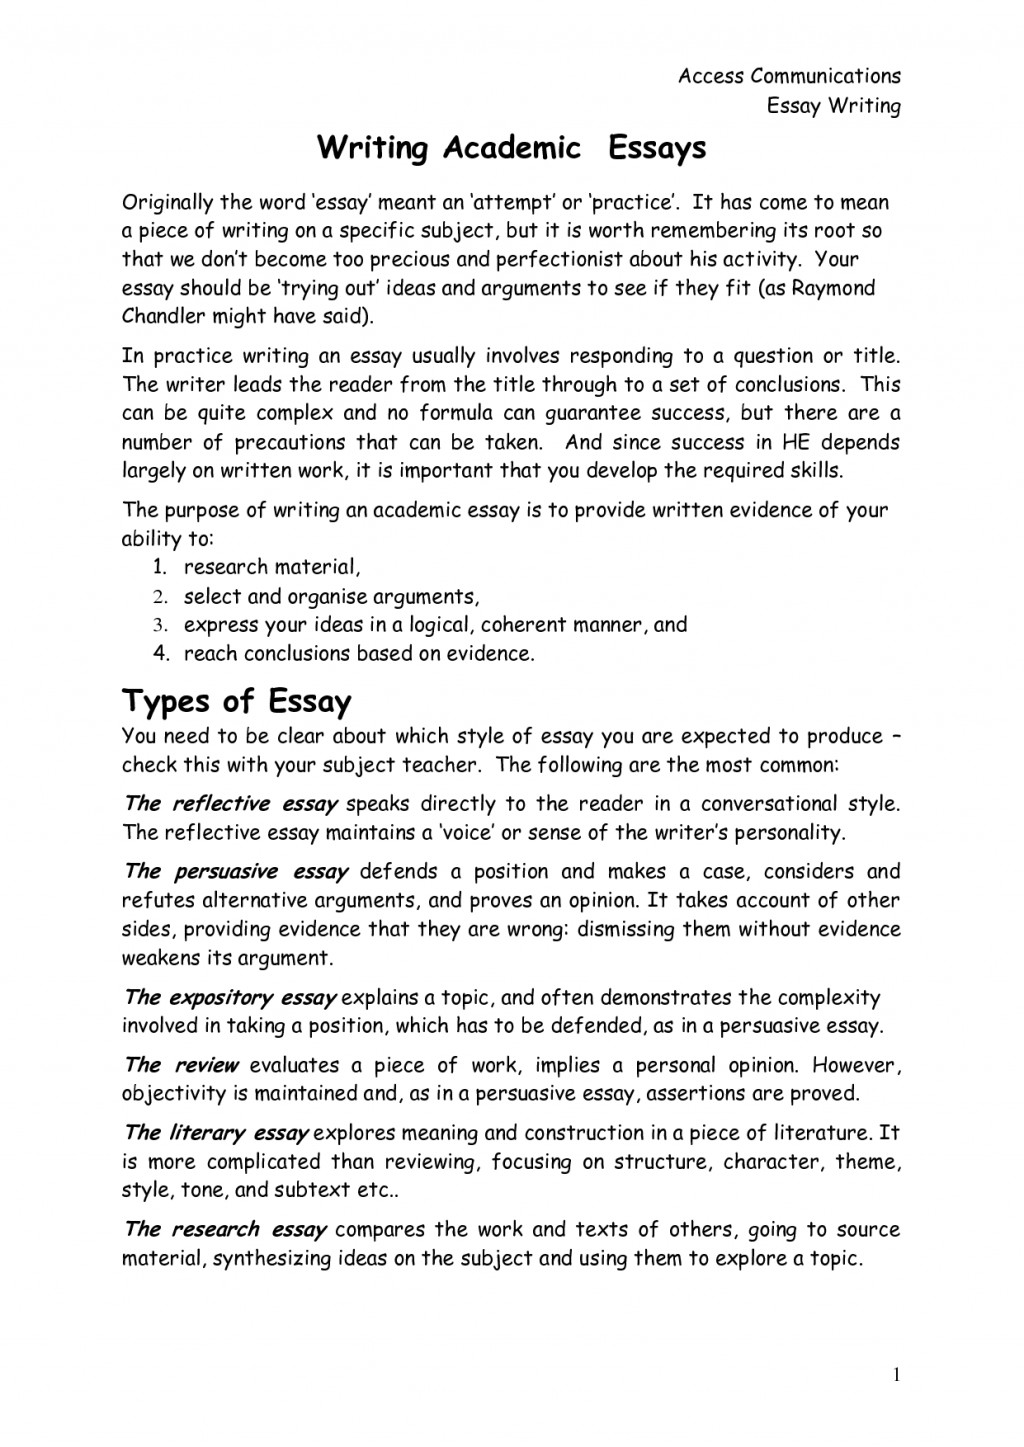 009 Reflective Essay Introduction Example Unbelievable Academic Writing English Large